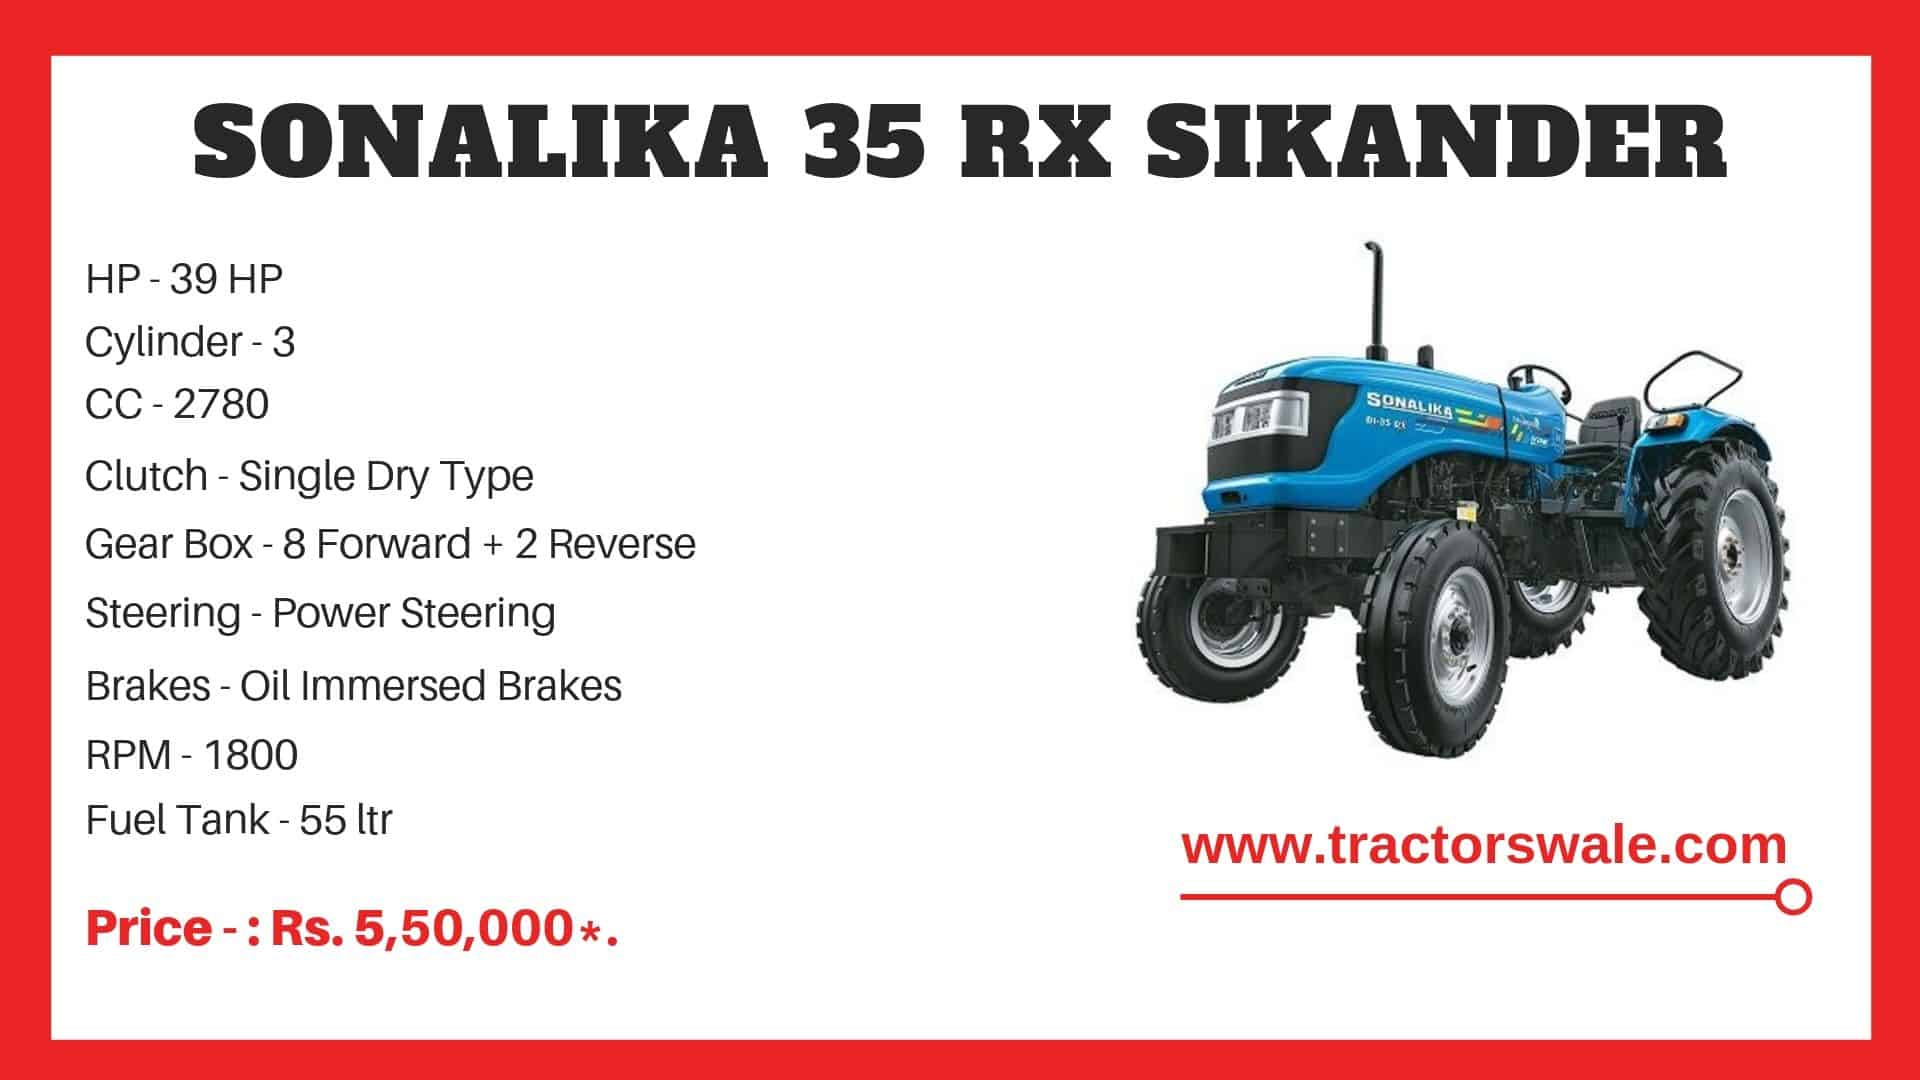 Sonalika 35 RX Sikander tractor specifications